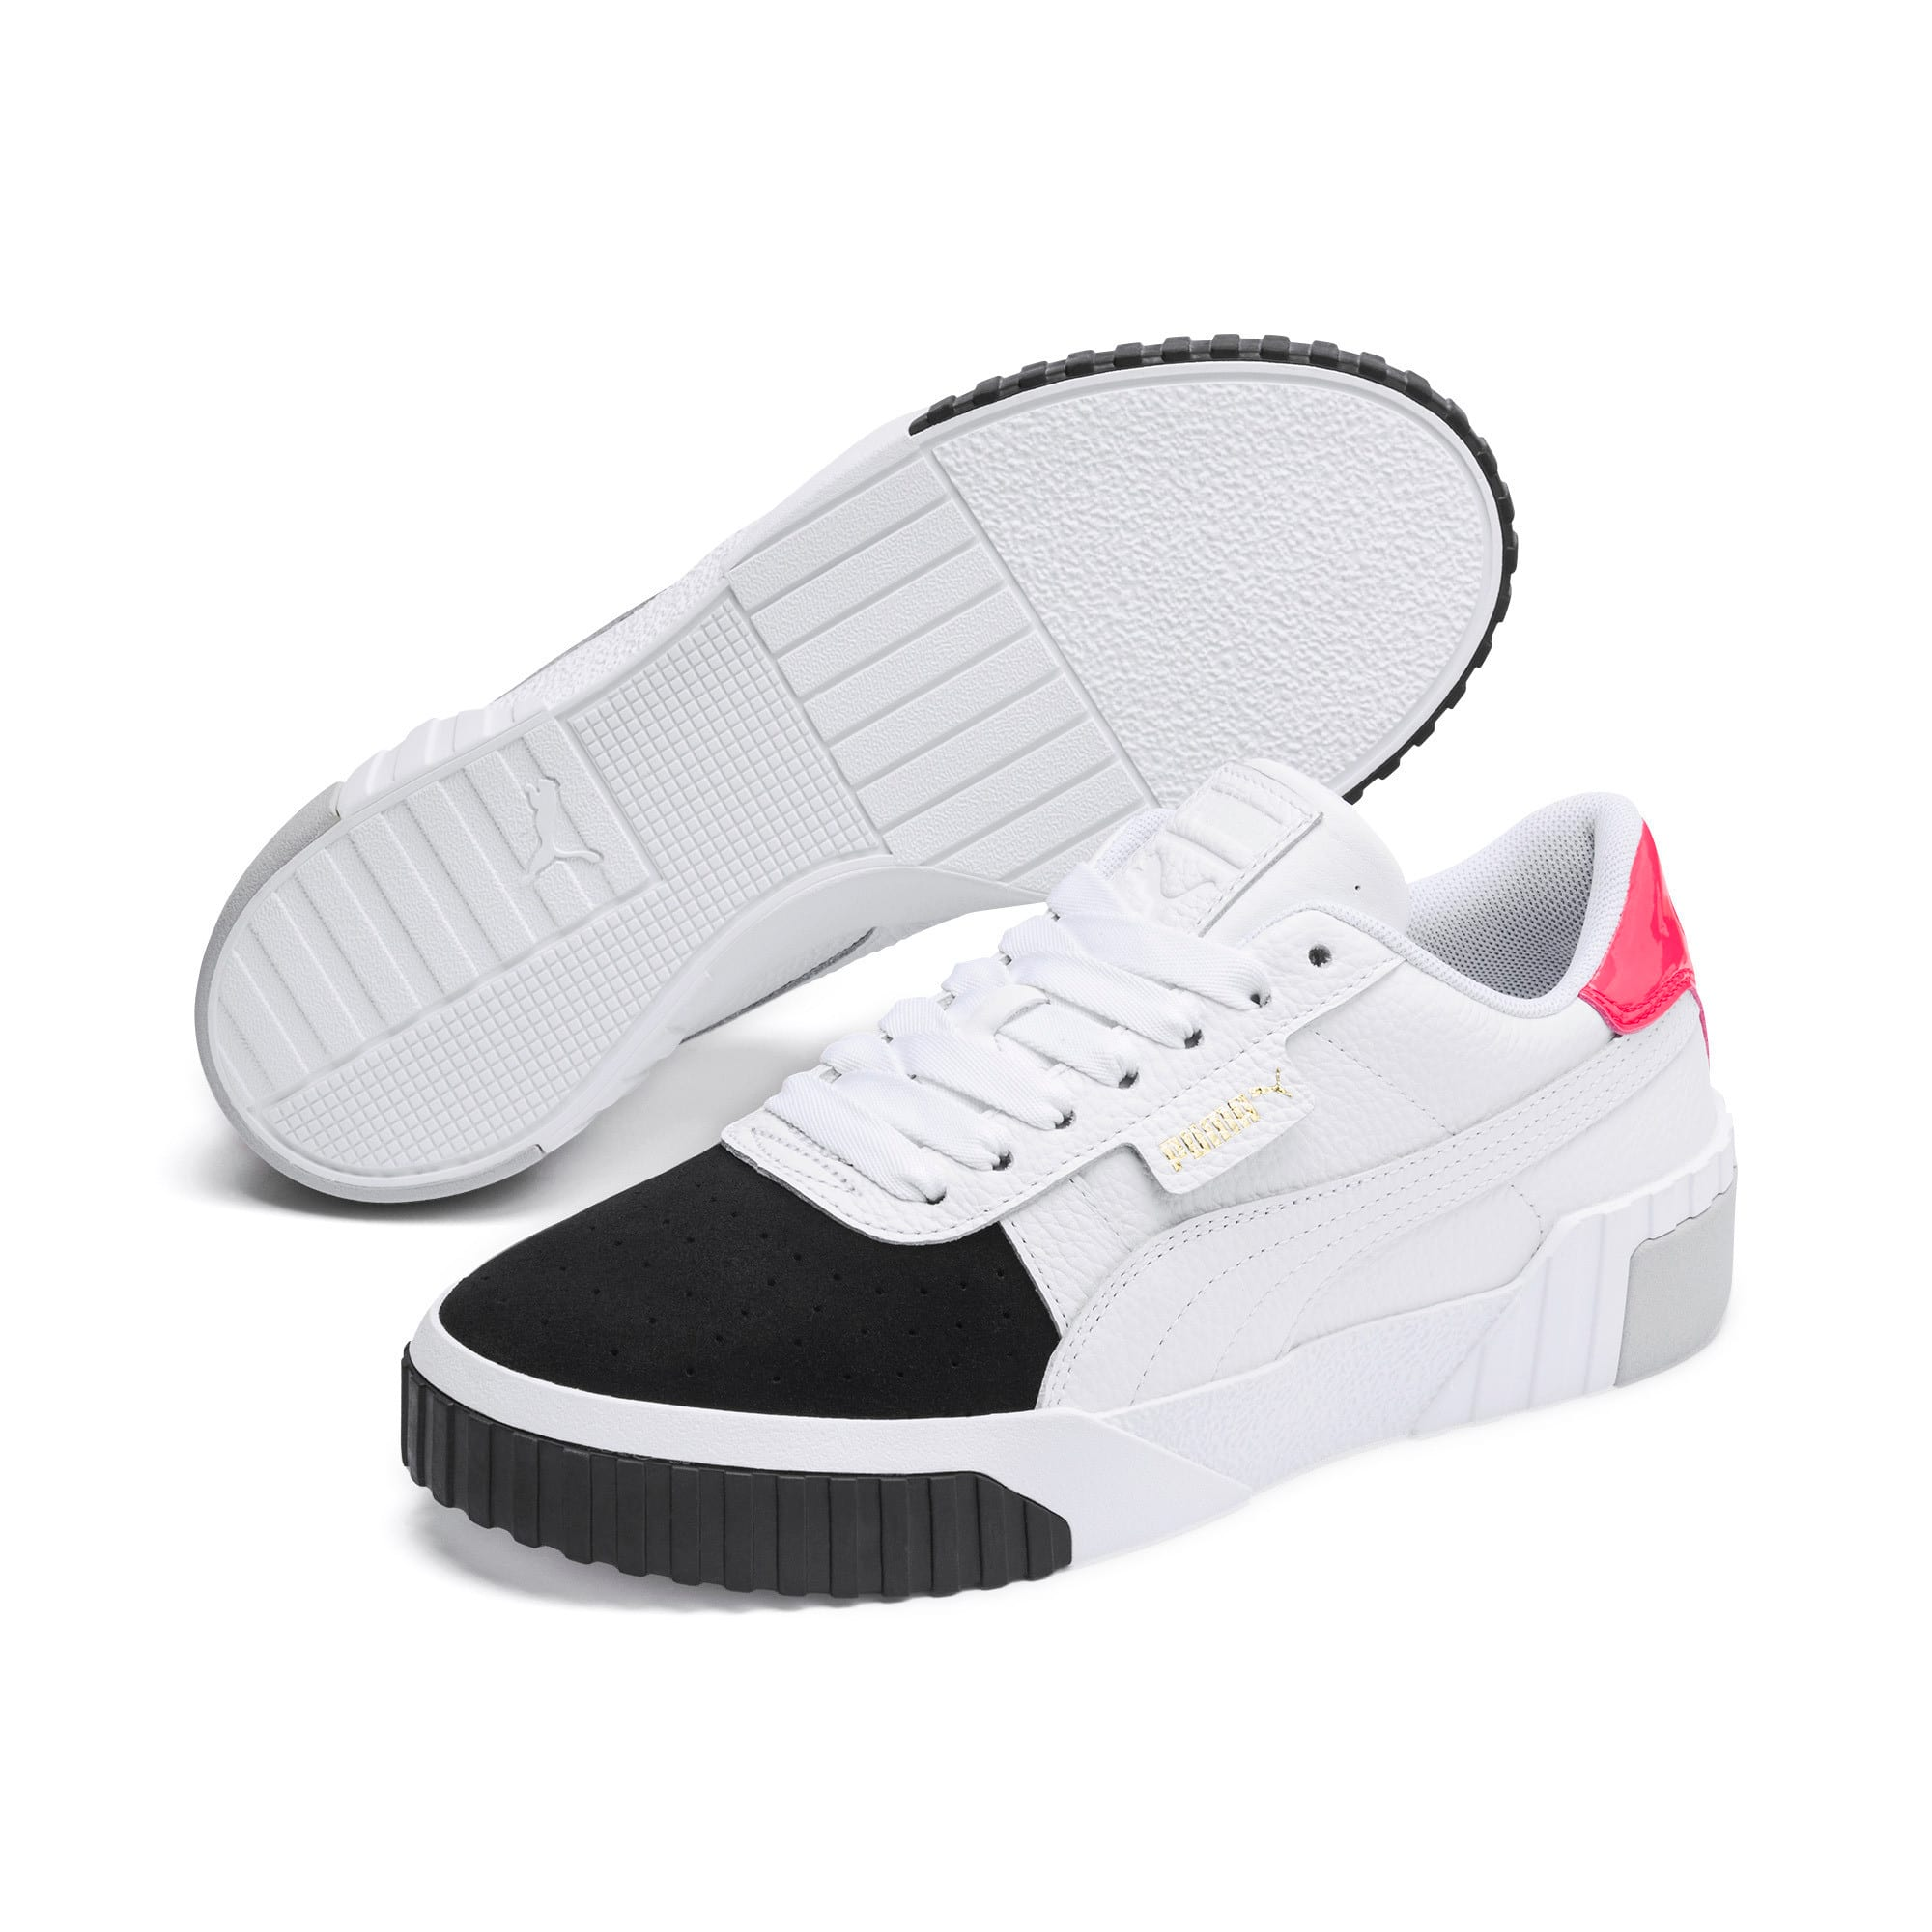 Thumbnail 3 of Cali Remix Women's Trainers, Puma White-Puma Black, medium